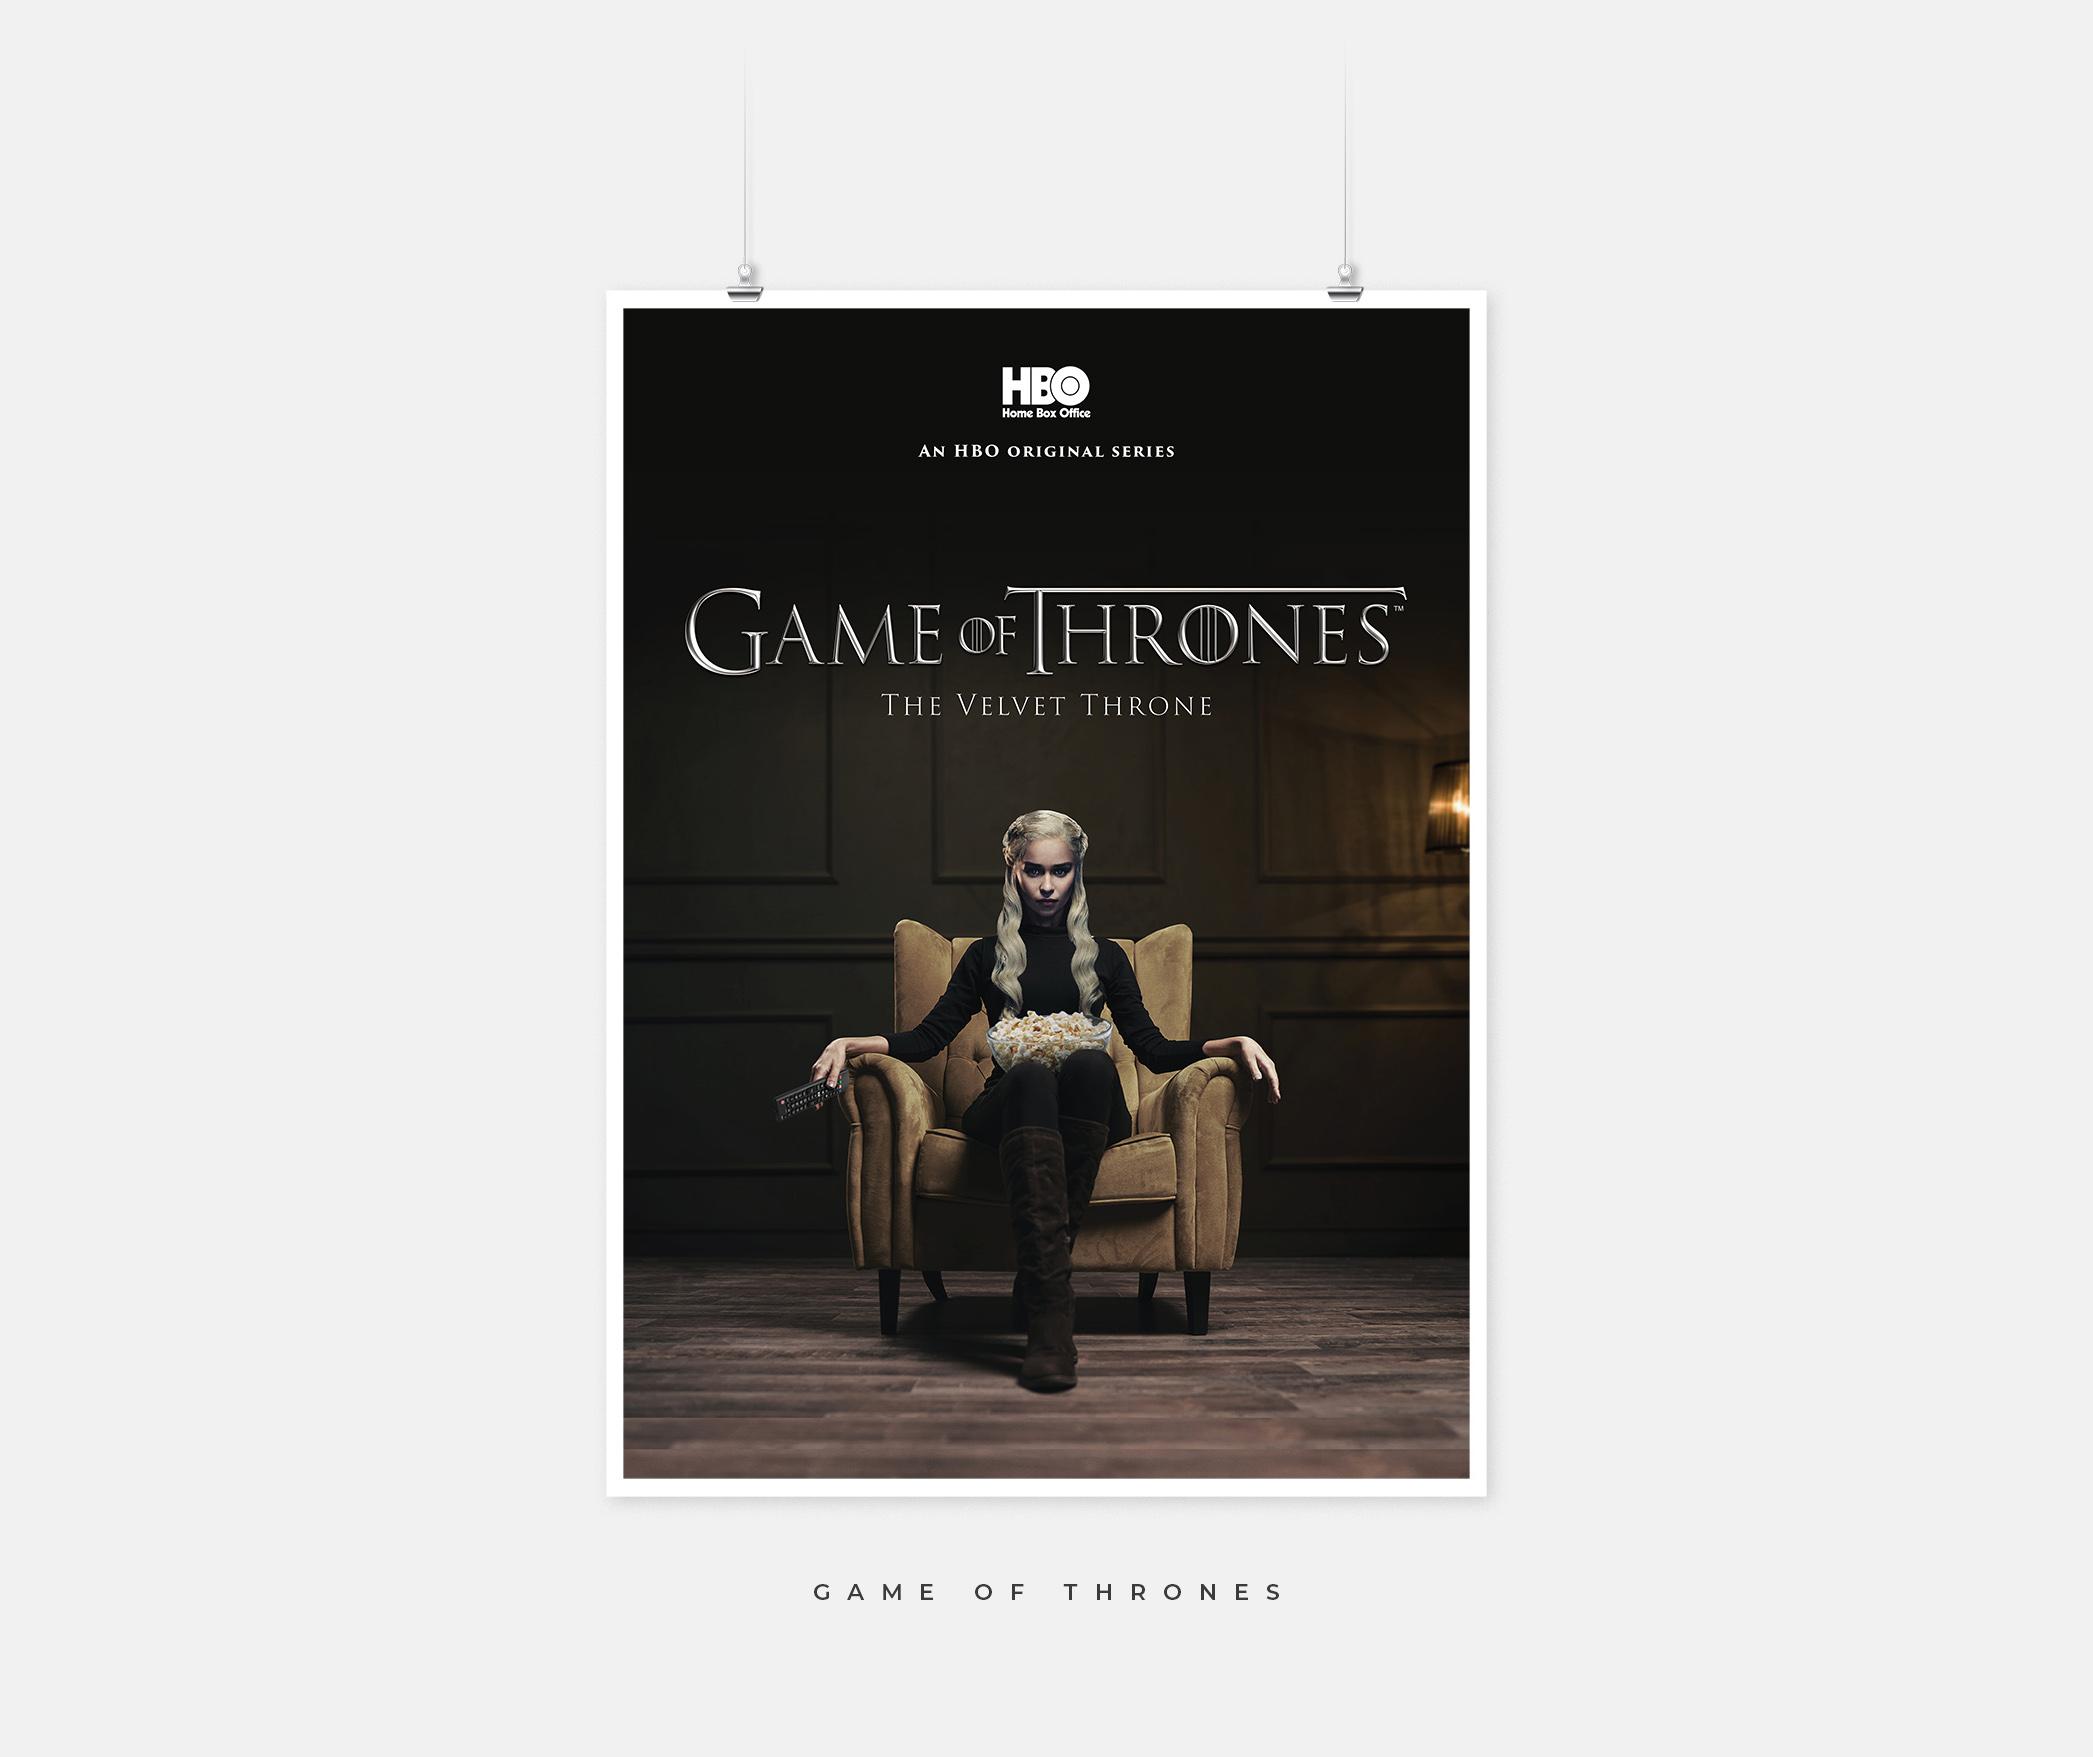 Game of Thrones poster with a Daenerys look alike sitting on a couch.